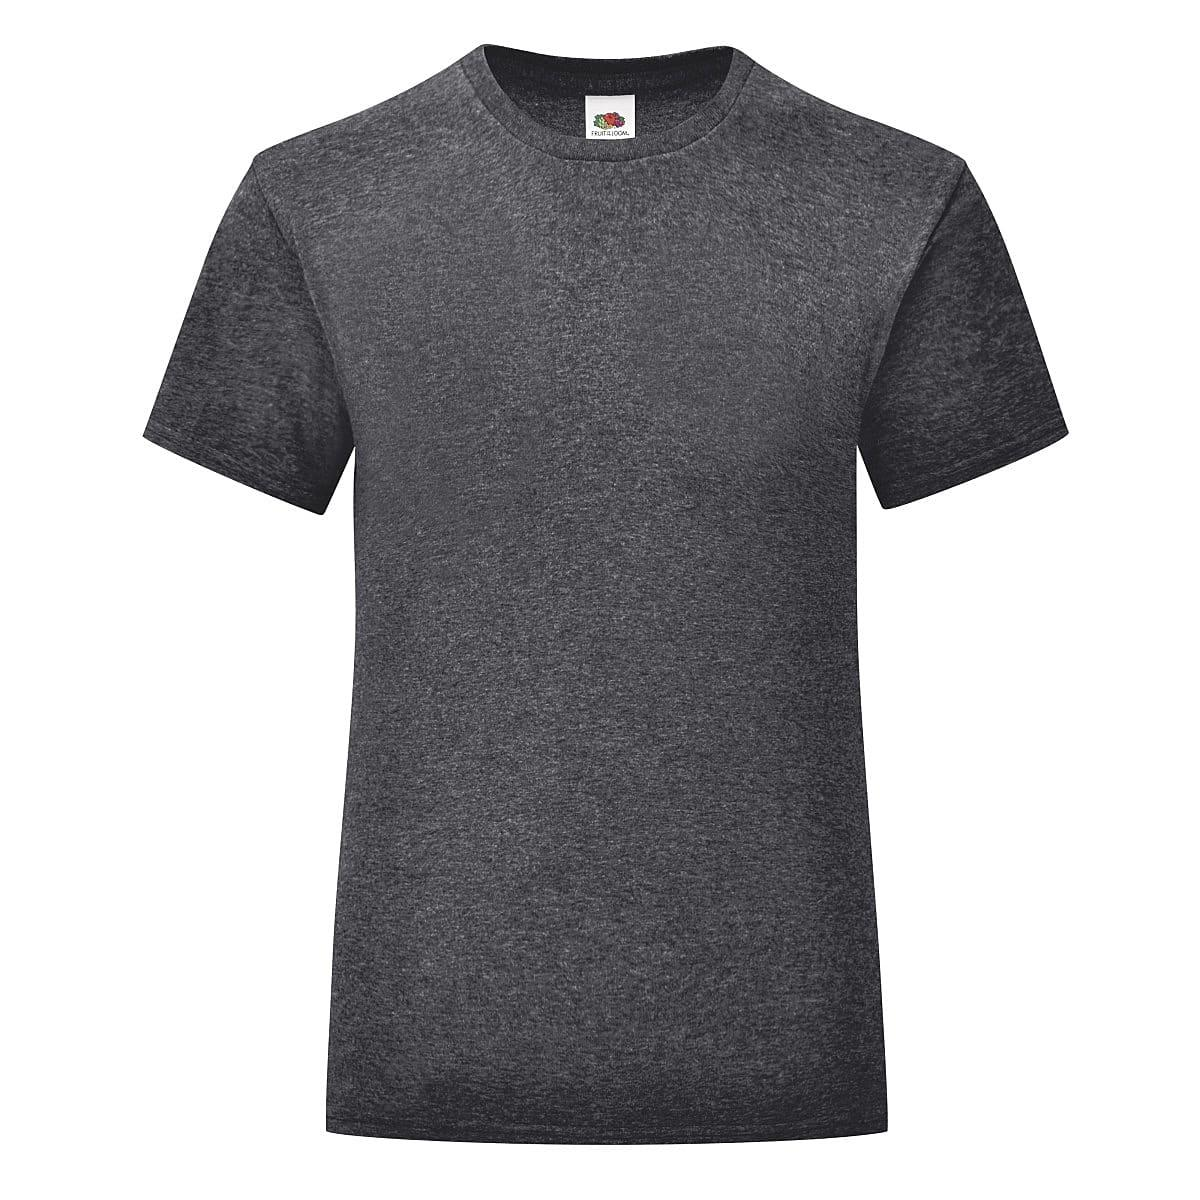 Fruit Of The Loom Girls Iconic T-Shirt in Light Graphite (Product Code: 61025)